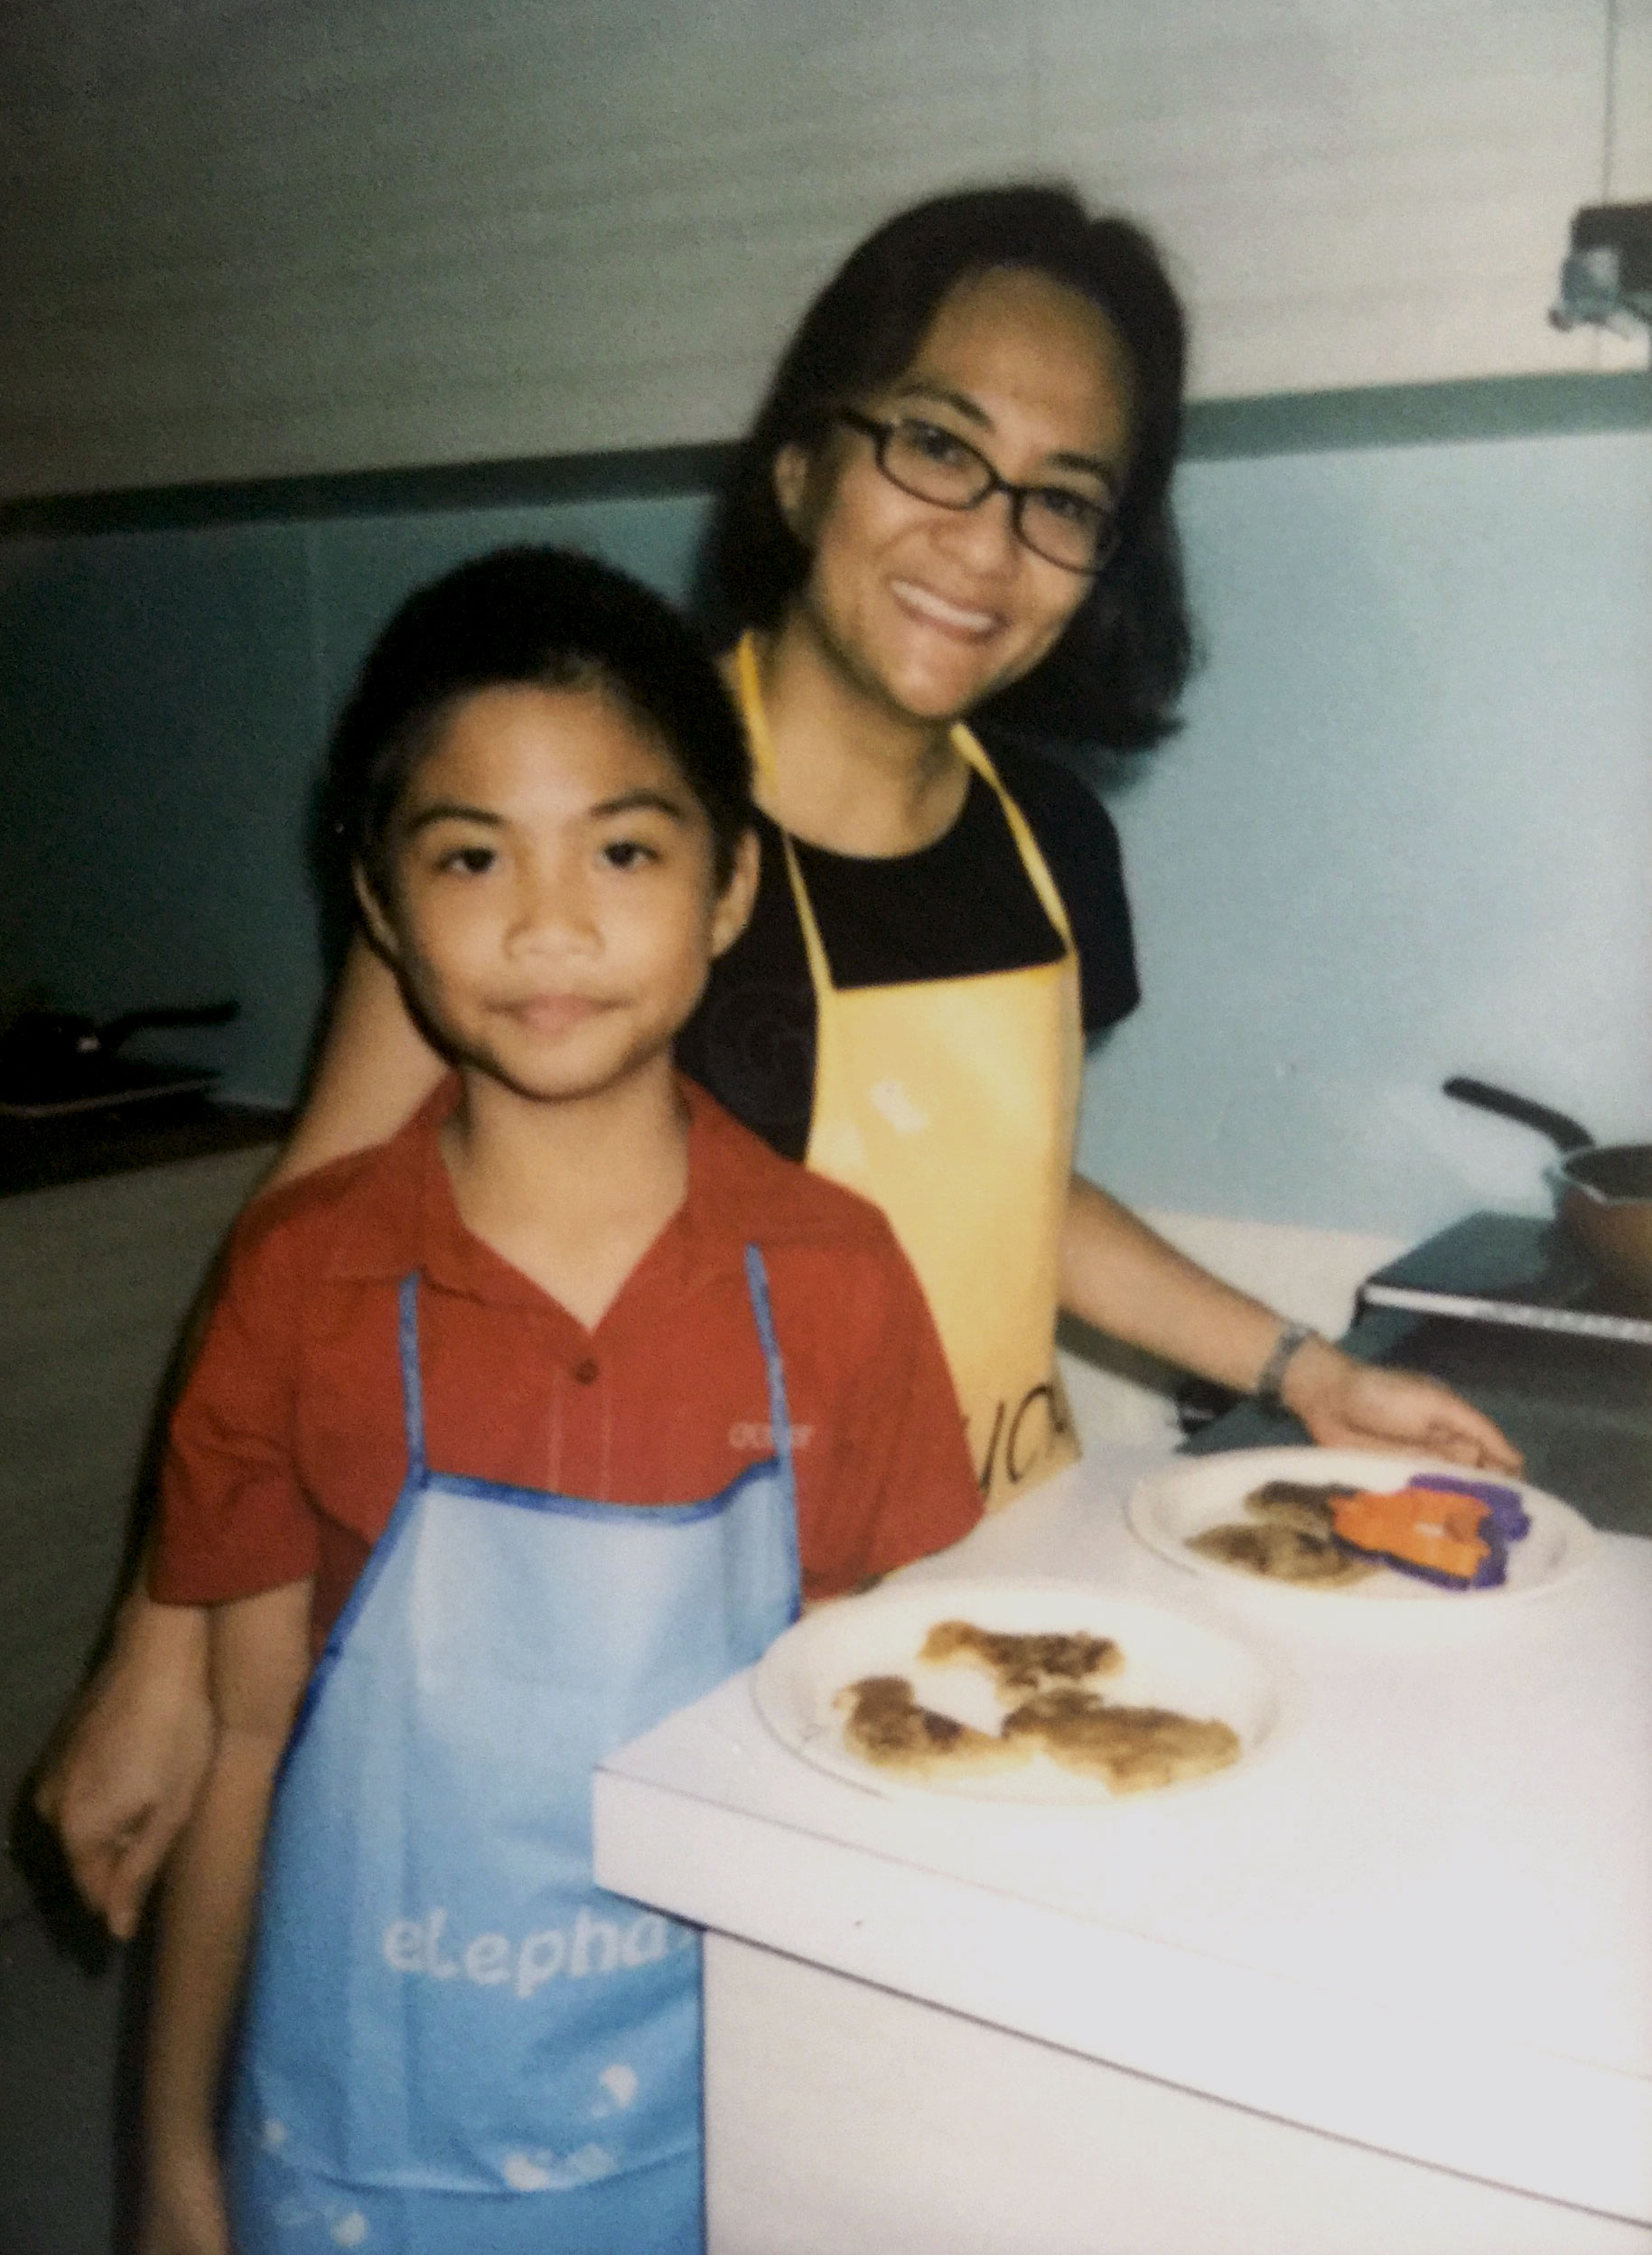 Joren and her son at a NutriWerkz cooking class, which is a great experience for both parent and child.